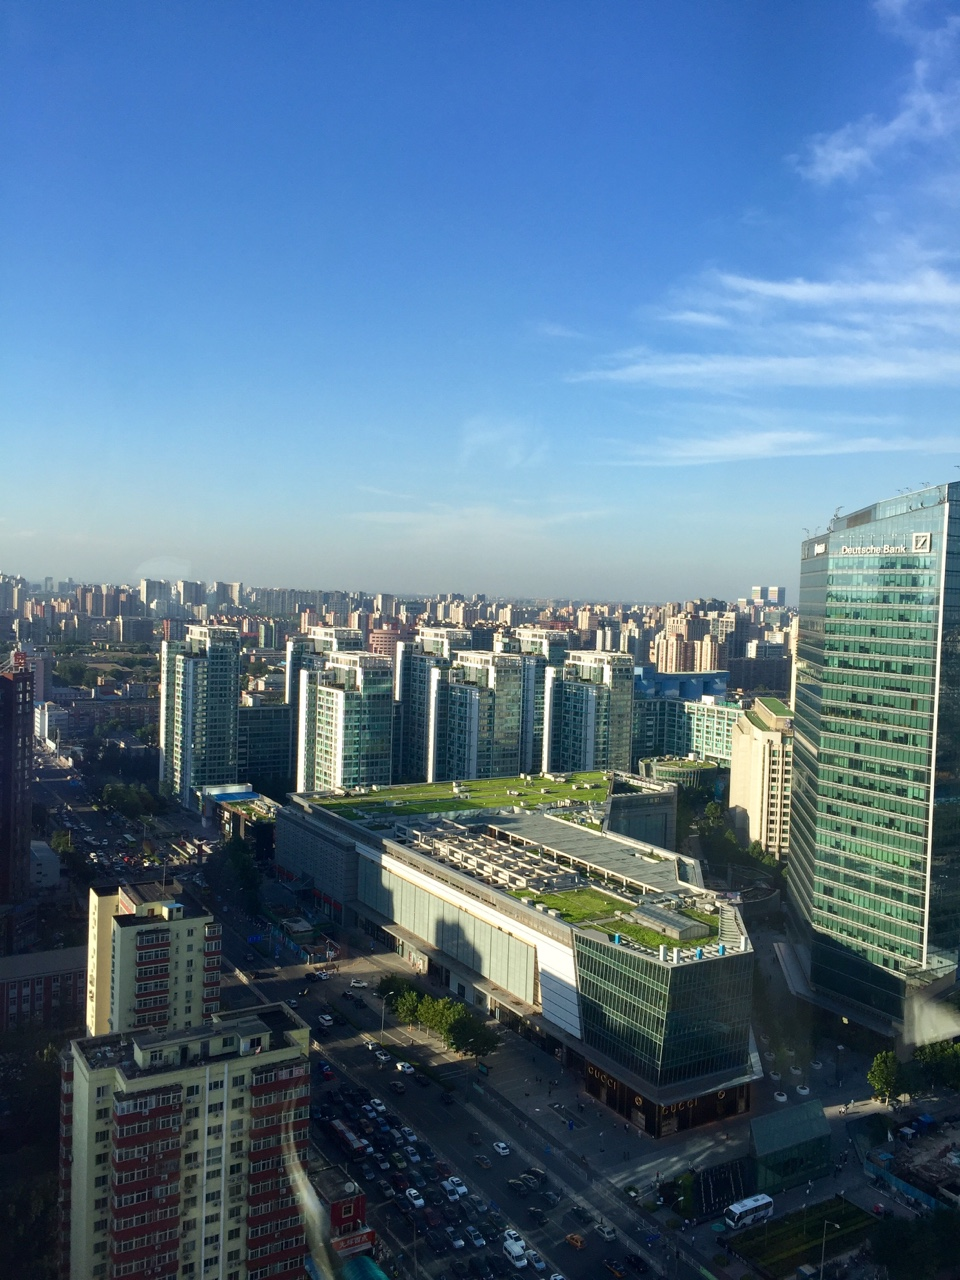 Beijing, China. Blue skies are rare